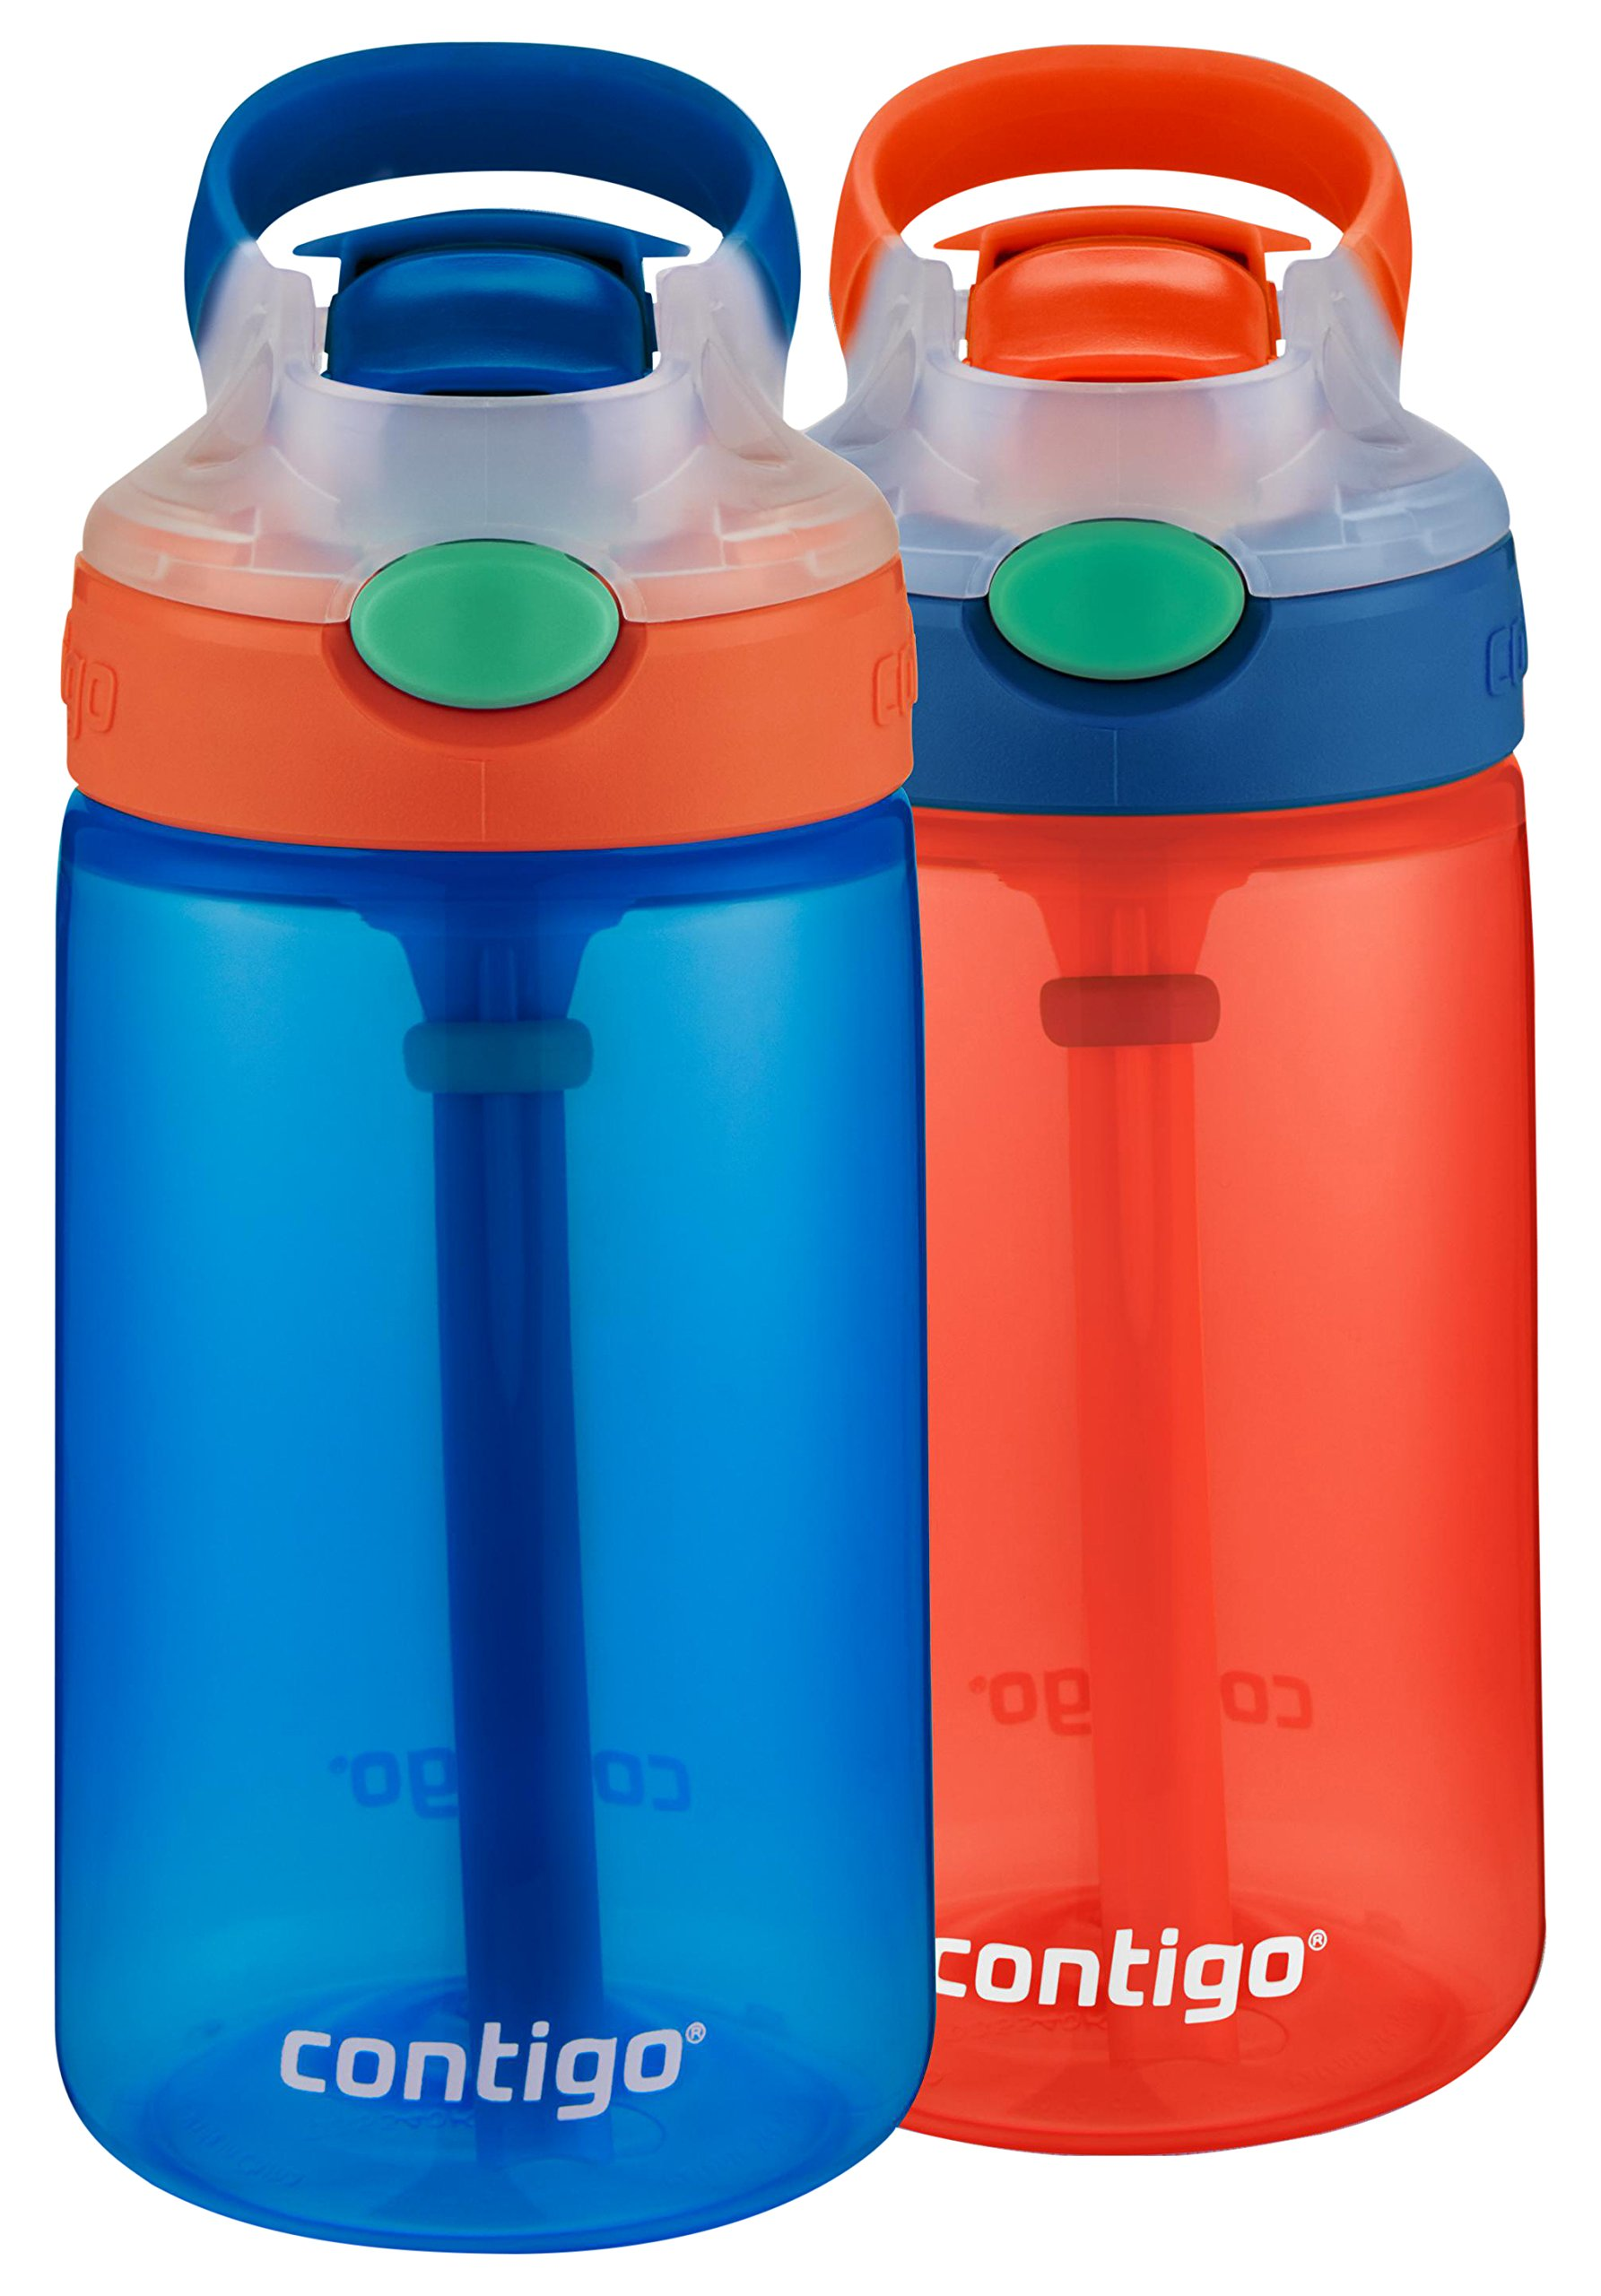 Contigo Kids Gizmo Flip Water Bottles, 14oz, French Blue/Coral, 2-Pack by Contigo (Image #1)